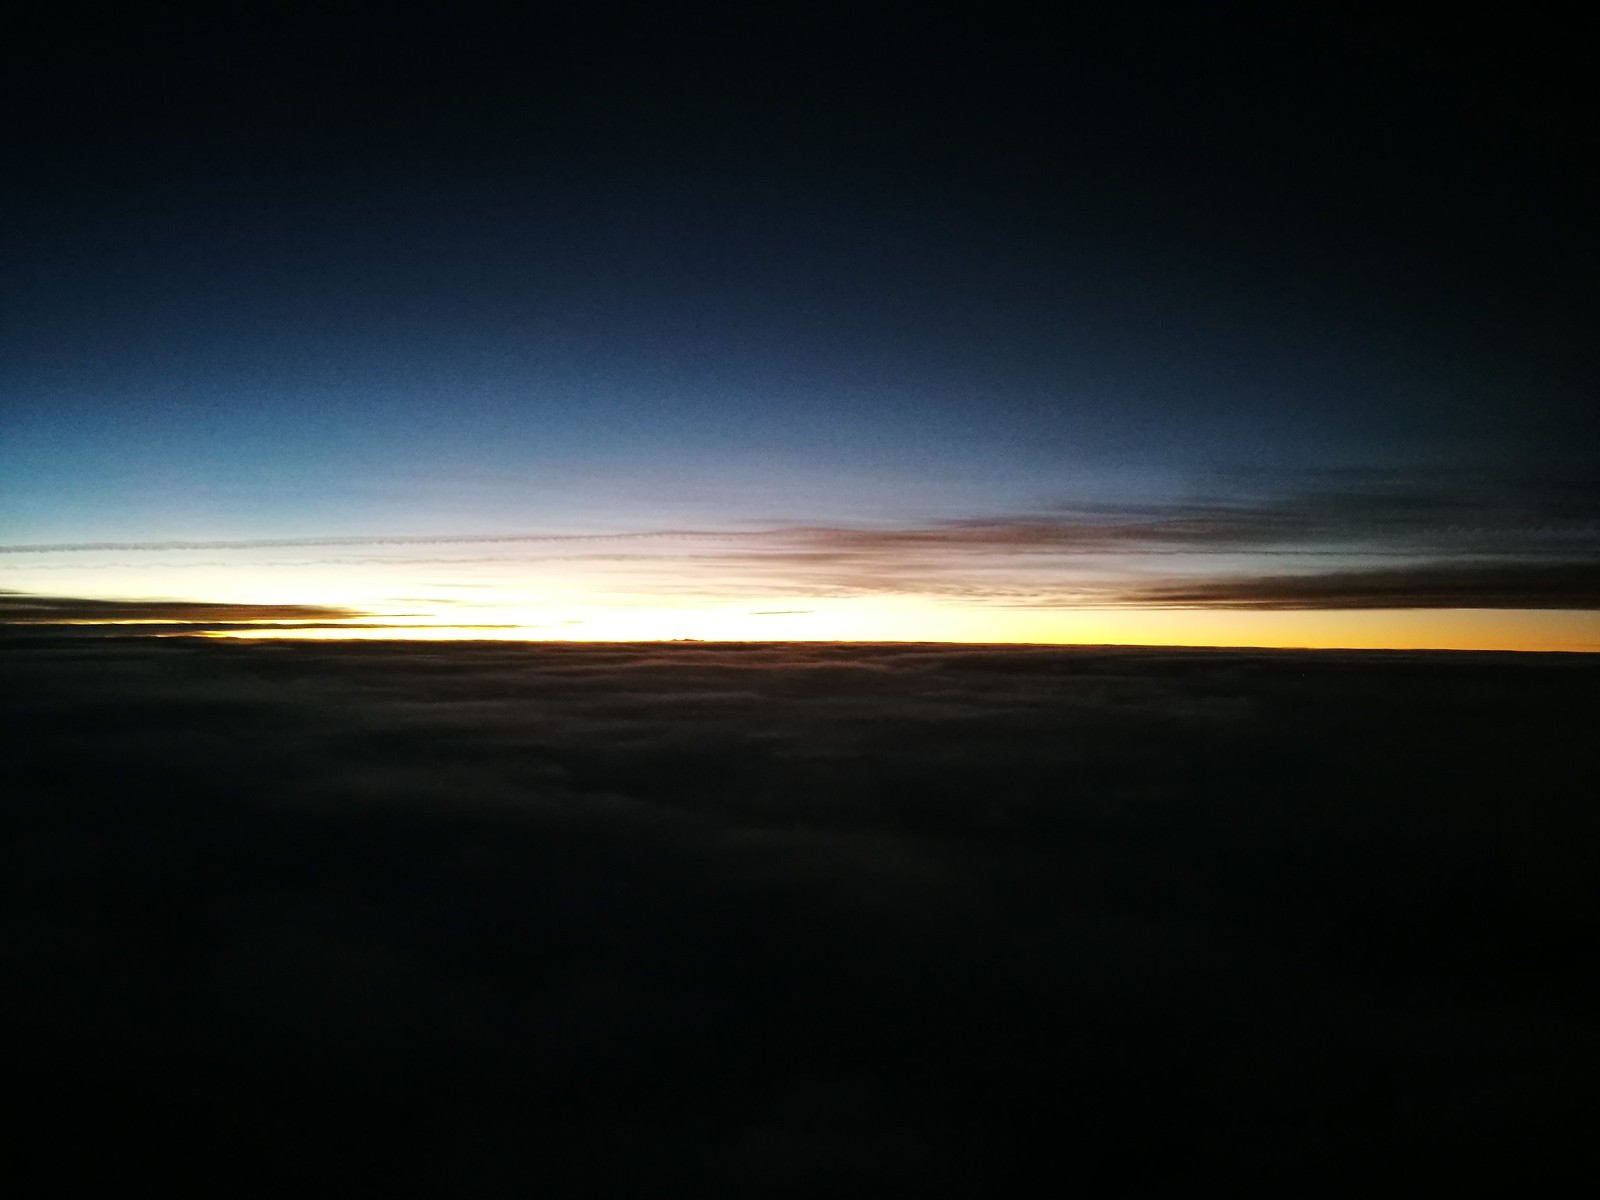 Sunset during the flight